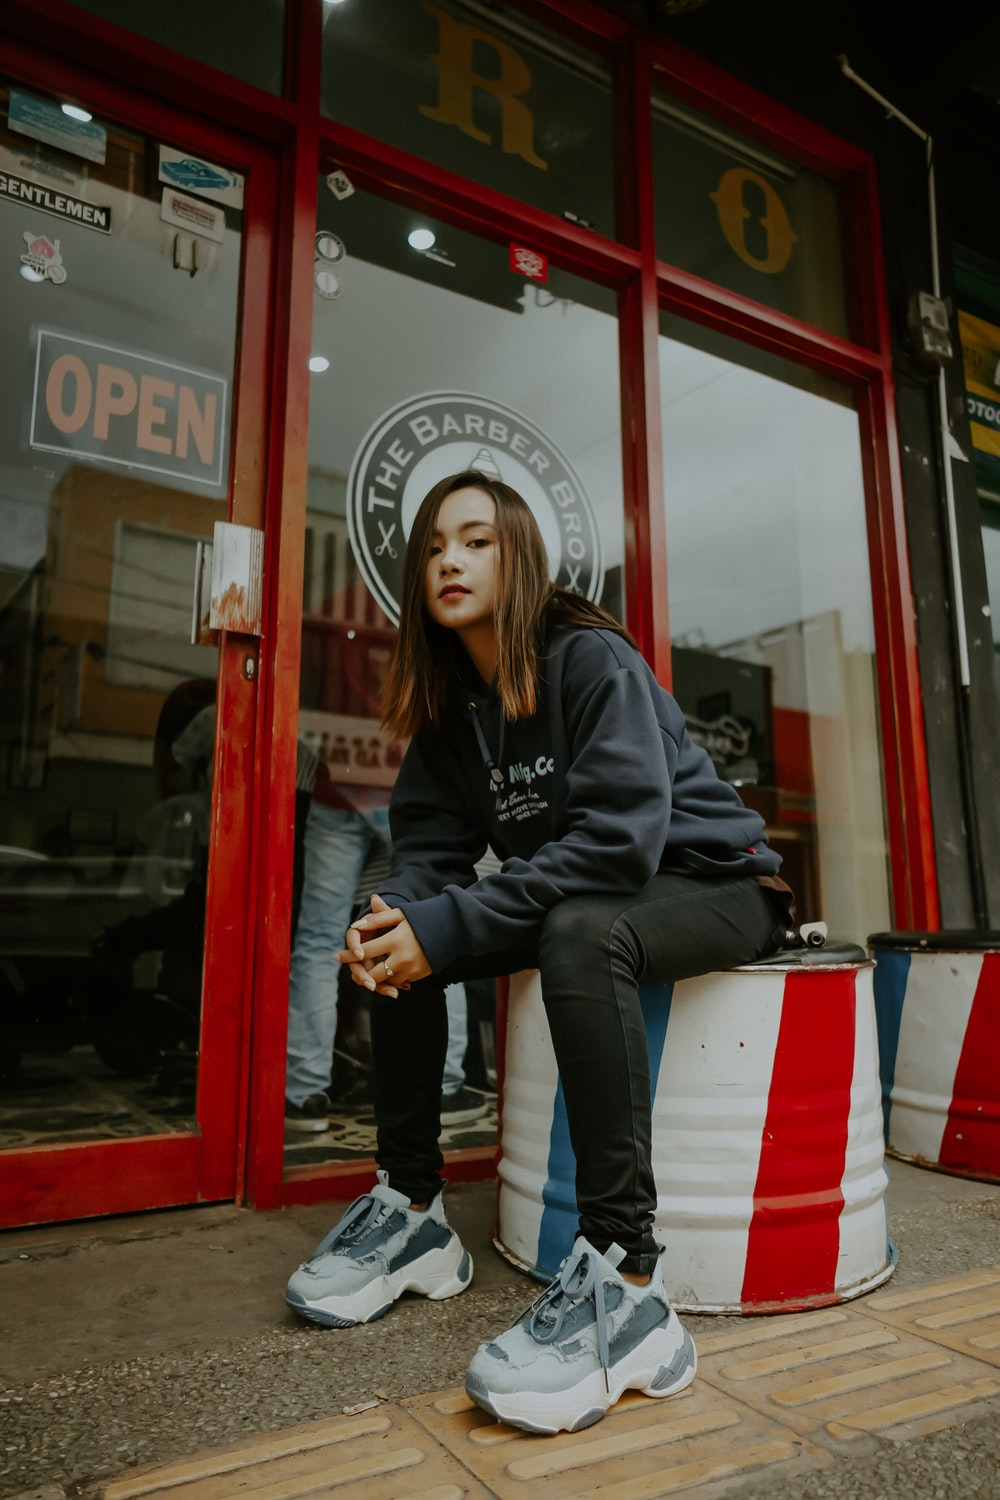 woman sitting in front of store door